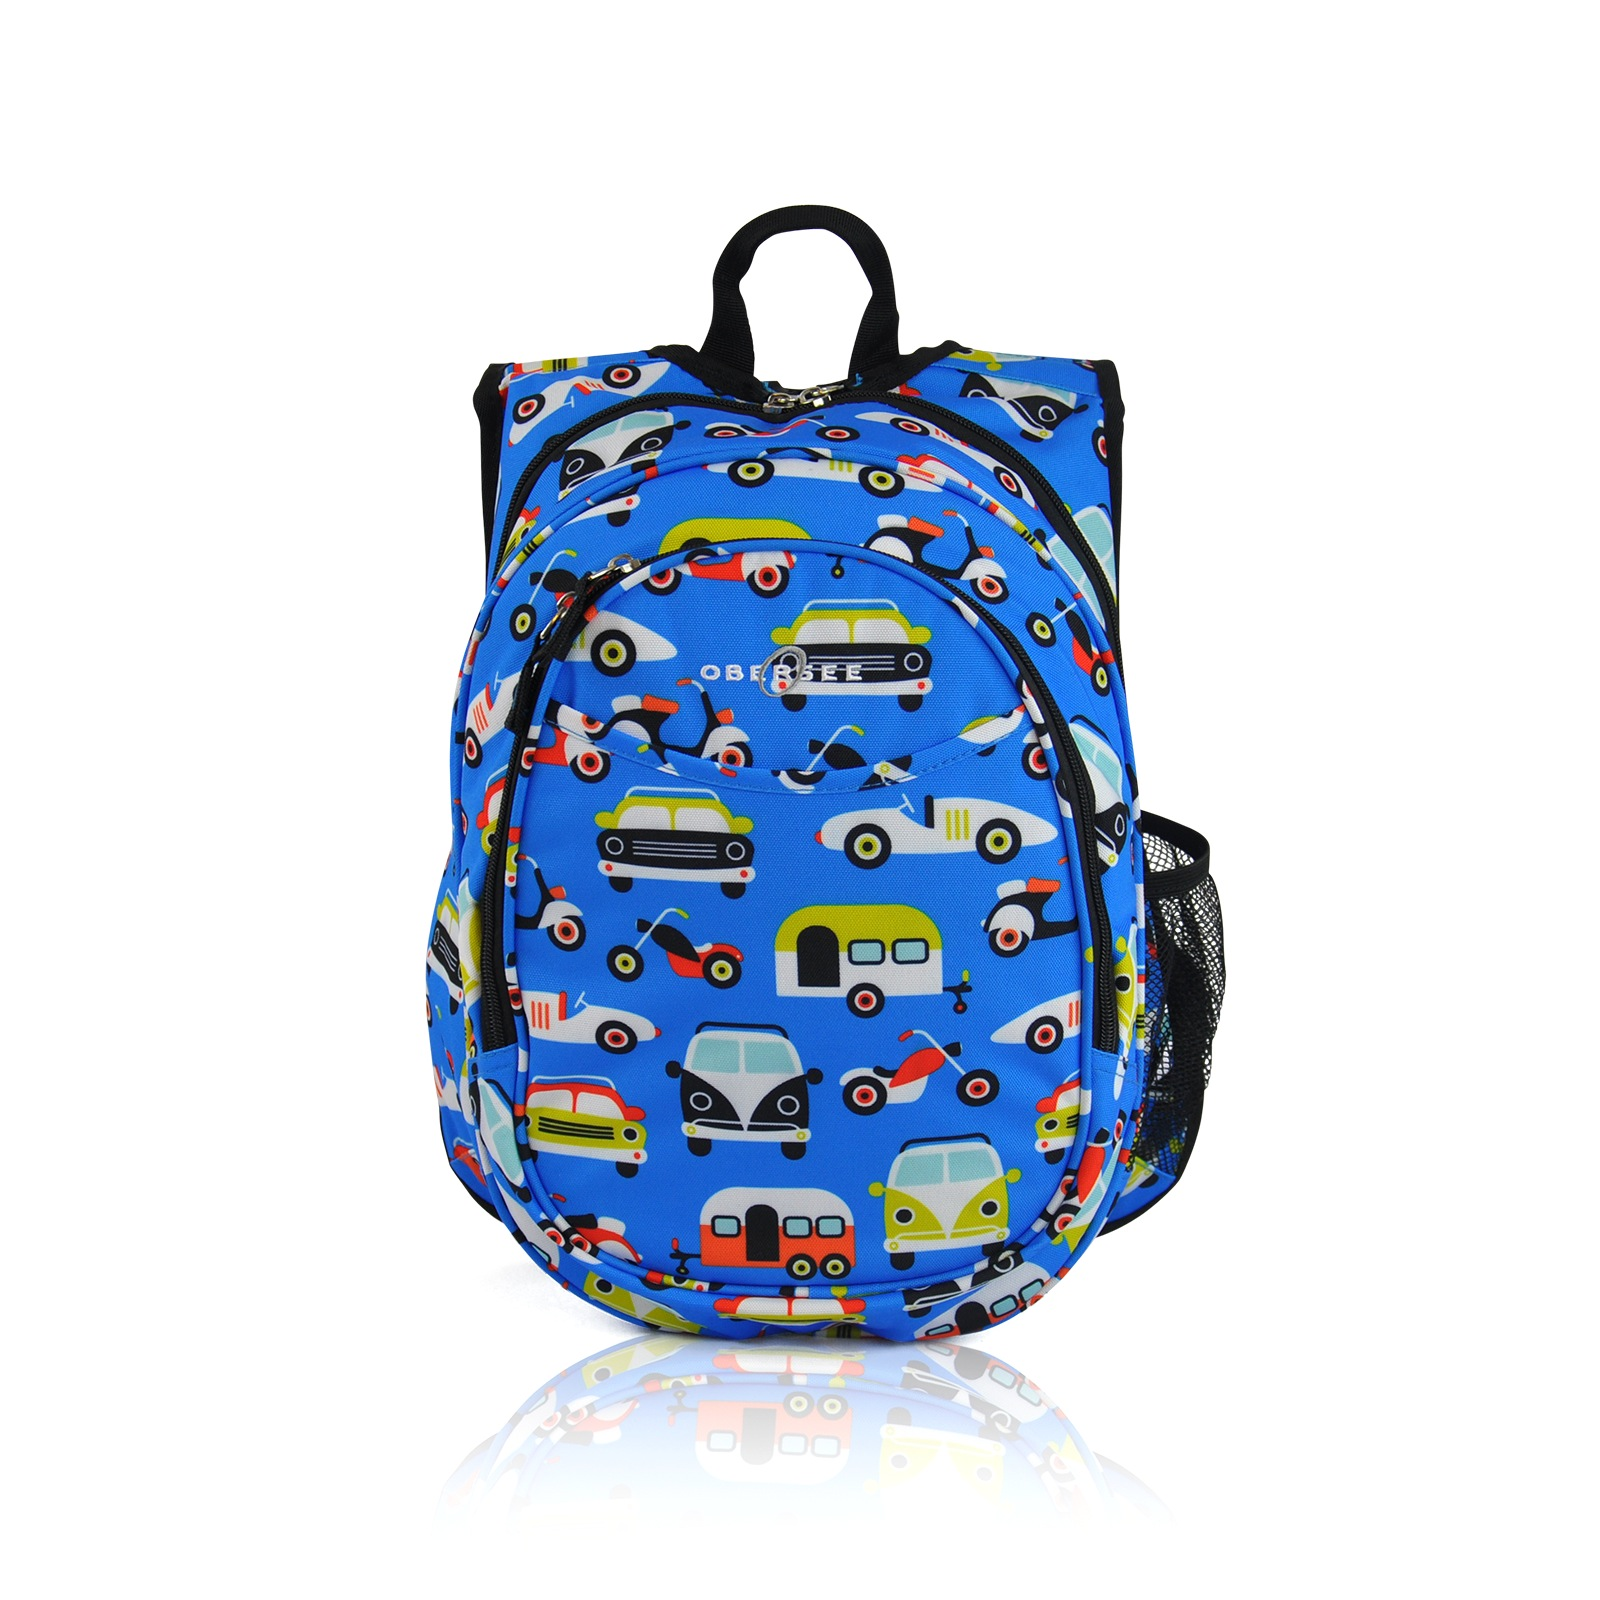 fun travel backpack for kids